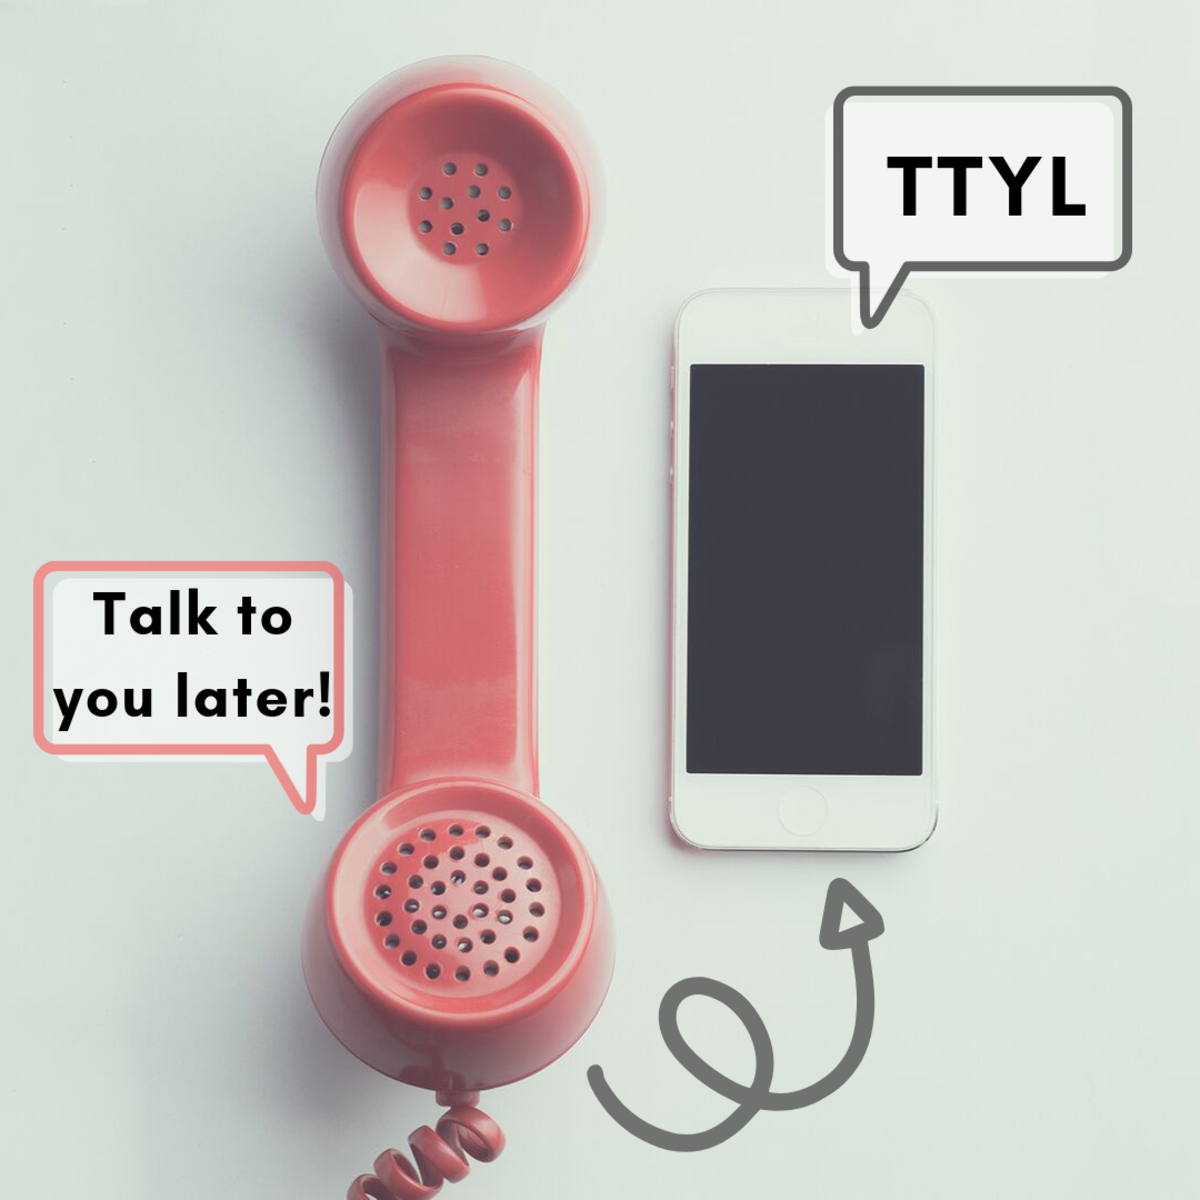 The texting era has brought an onslaught of new acronyms. Here's a guide to 50 of the most common texting abbreviations, from FML to IRL.